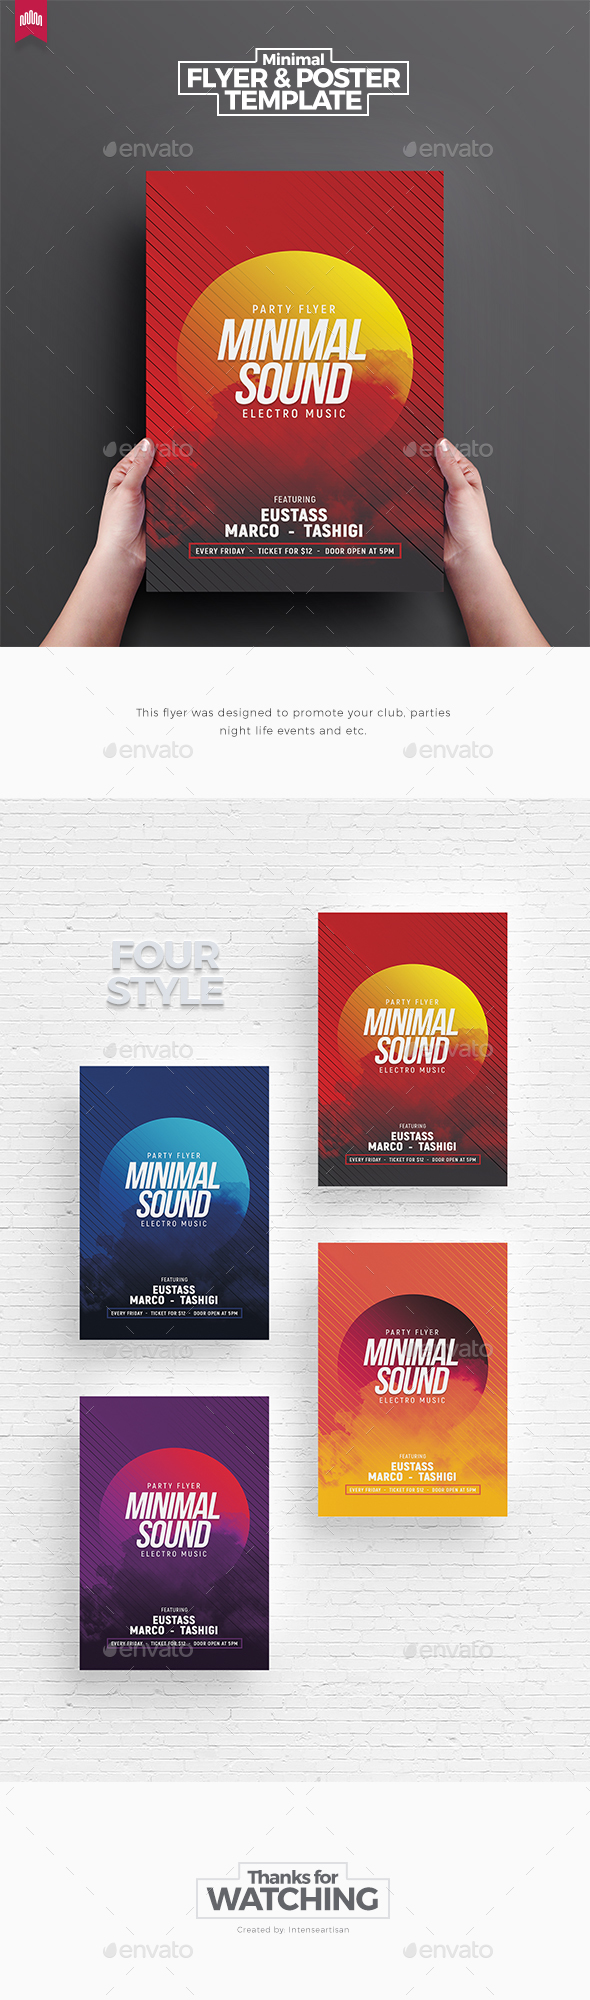 Minimal Sound - Flyer Template - Clubs & Parties Events